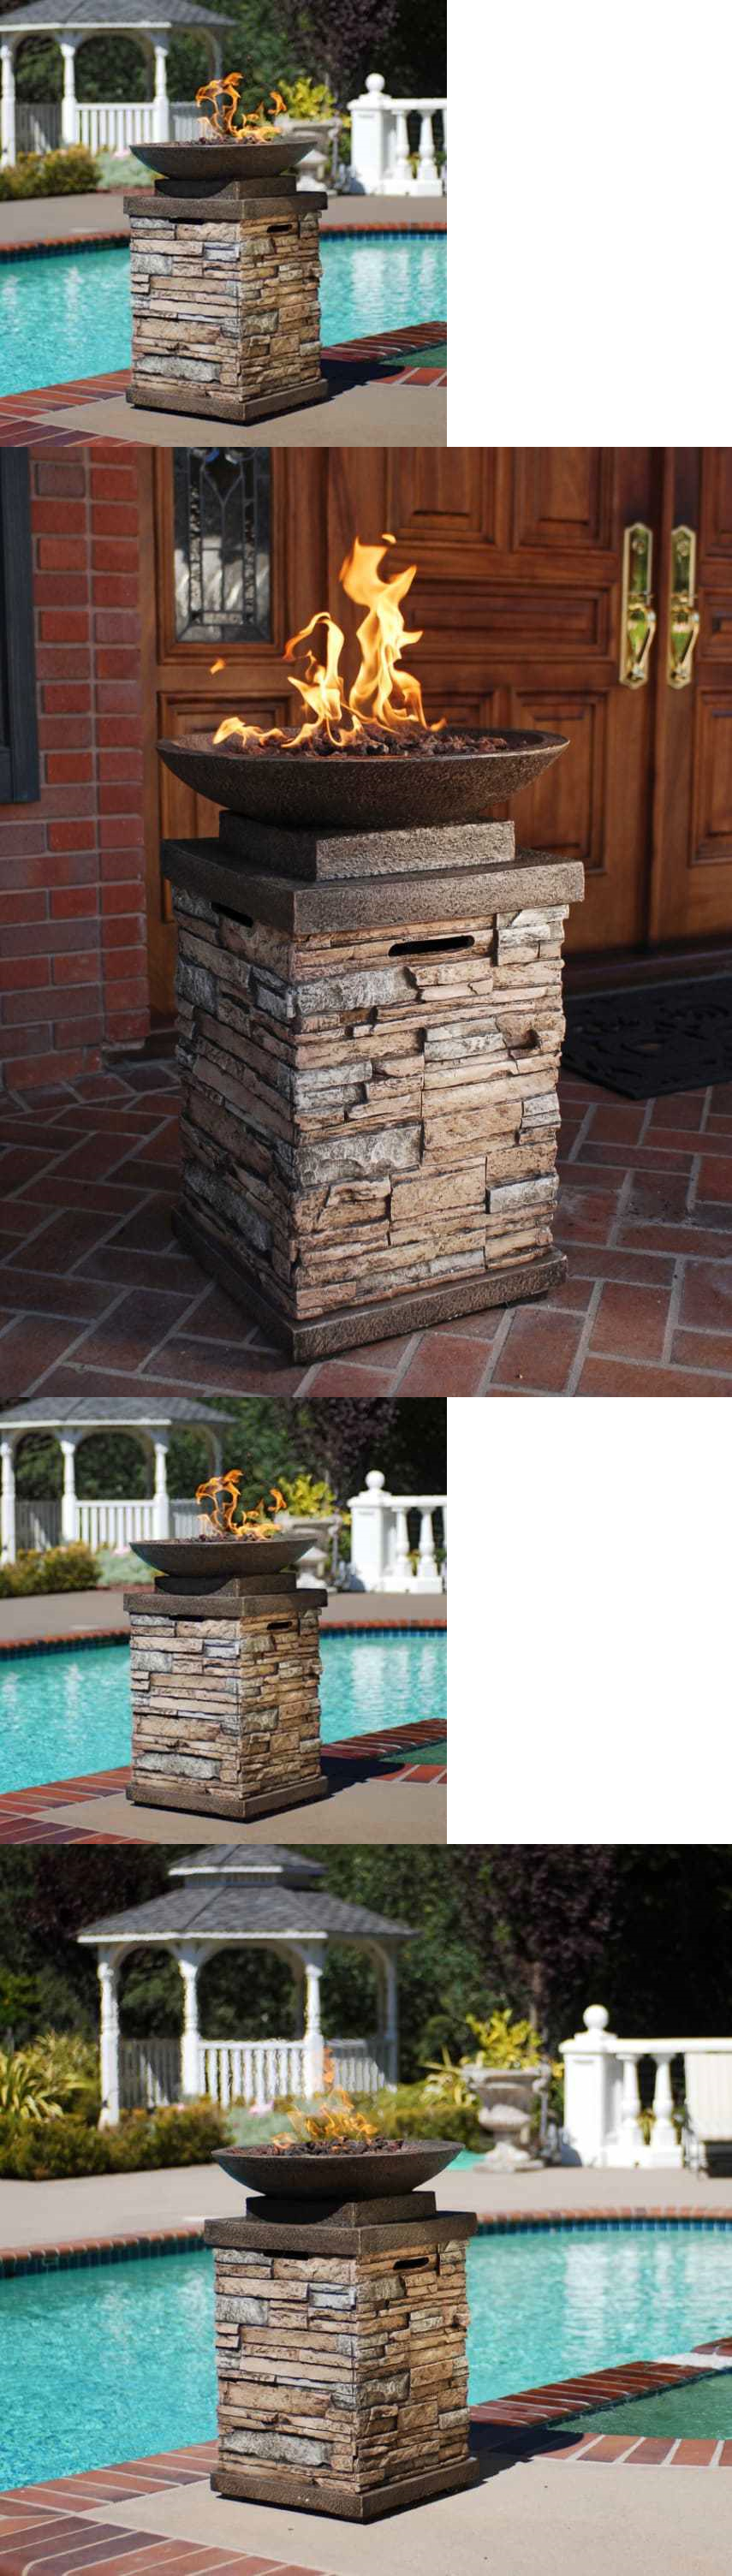 a11c00c57c4446de28f9a1426478fd10 Top Result 50 Lovely Stone Propane Fire Pit Pic 2018 Hgd6